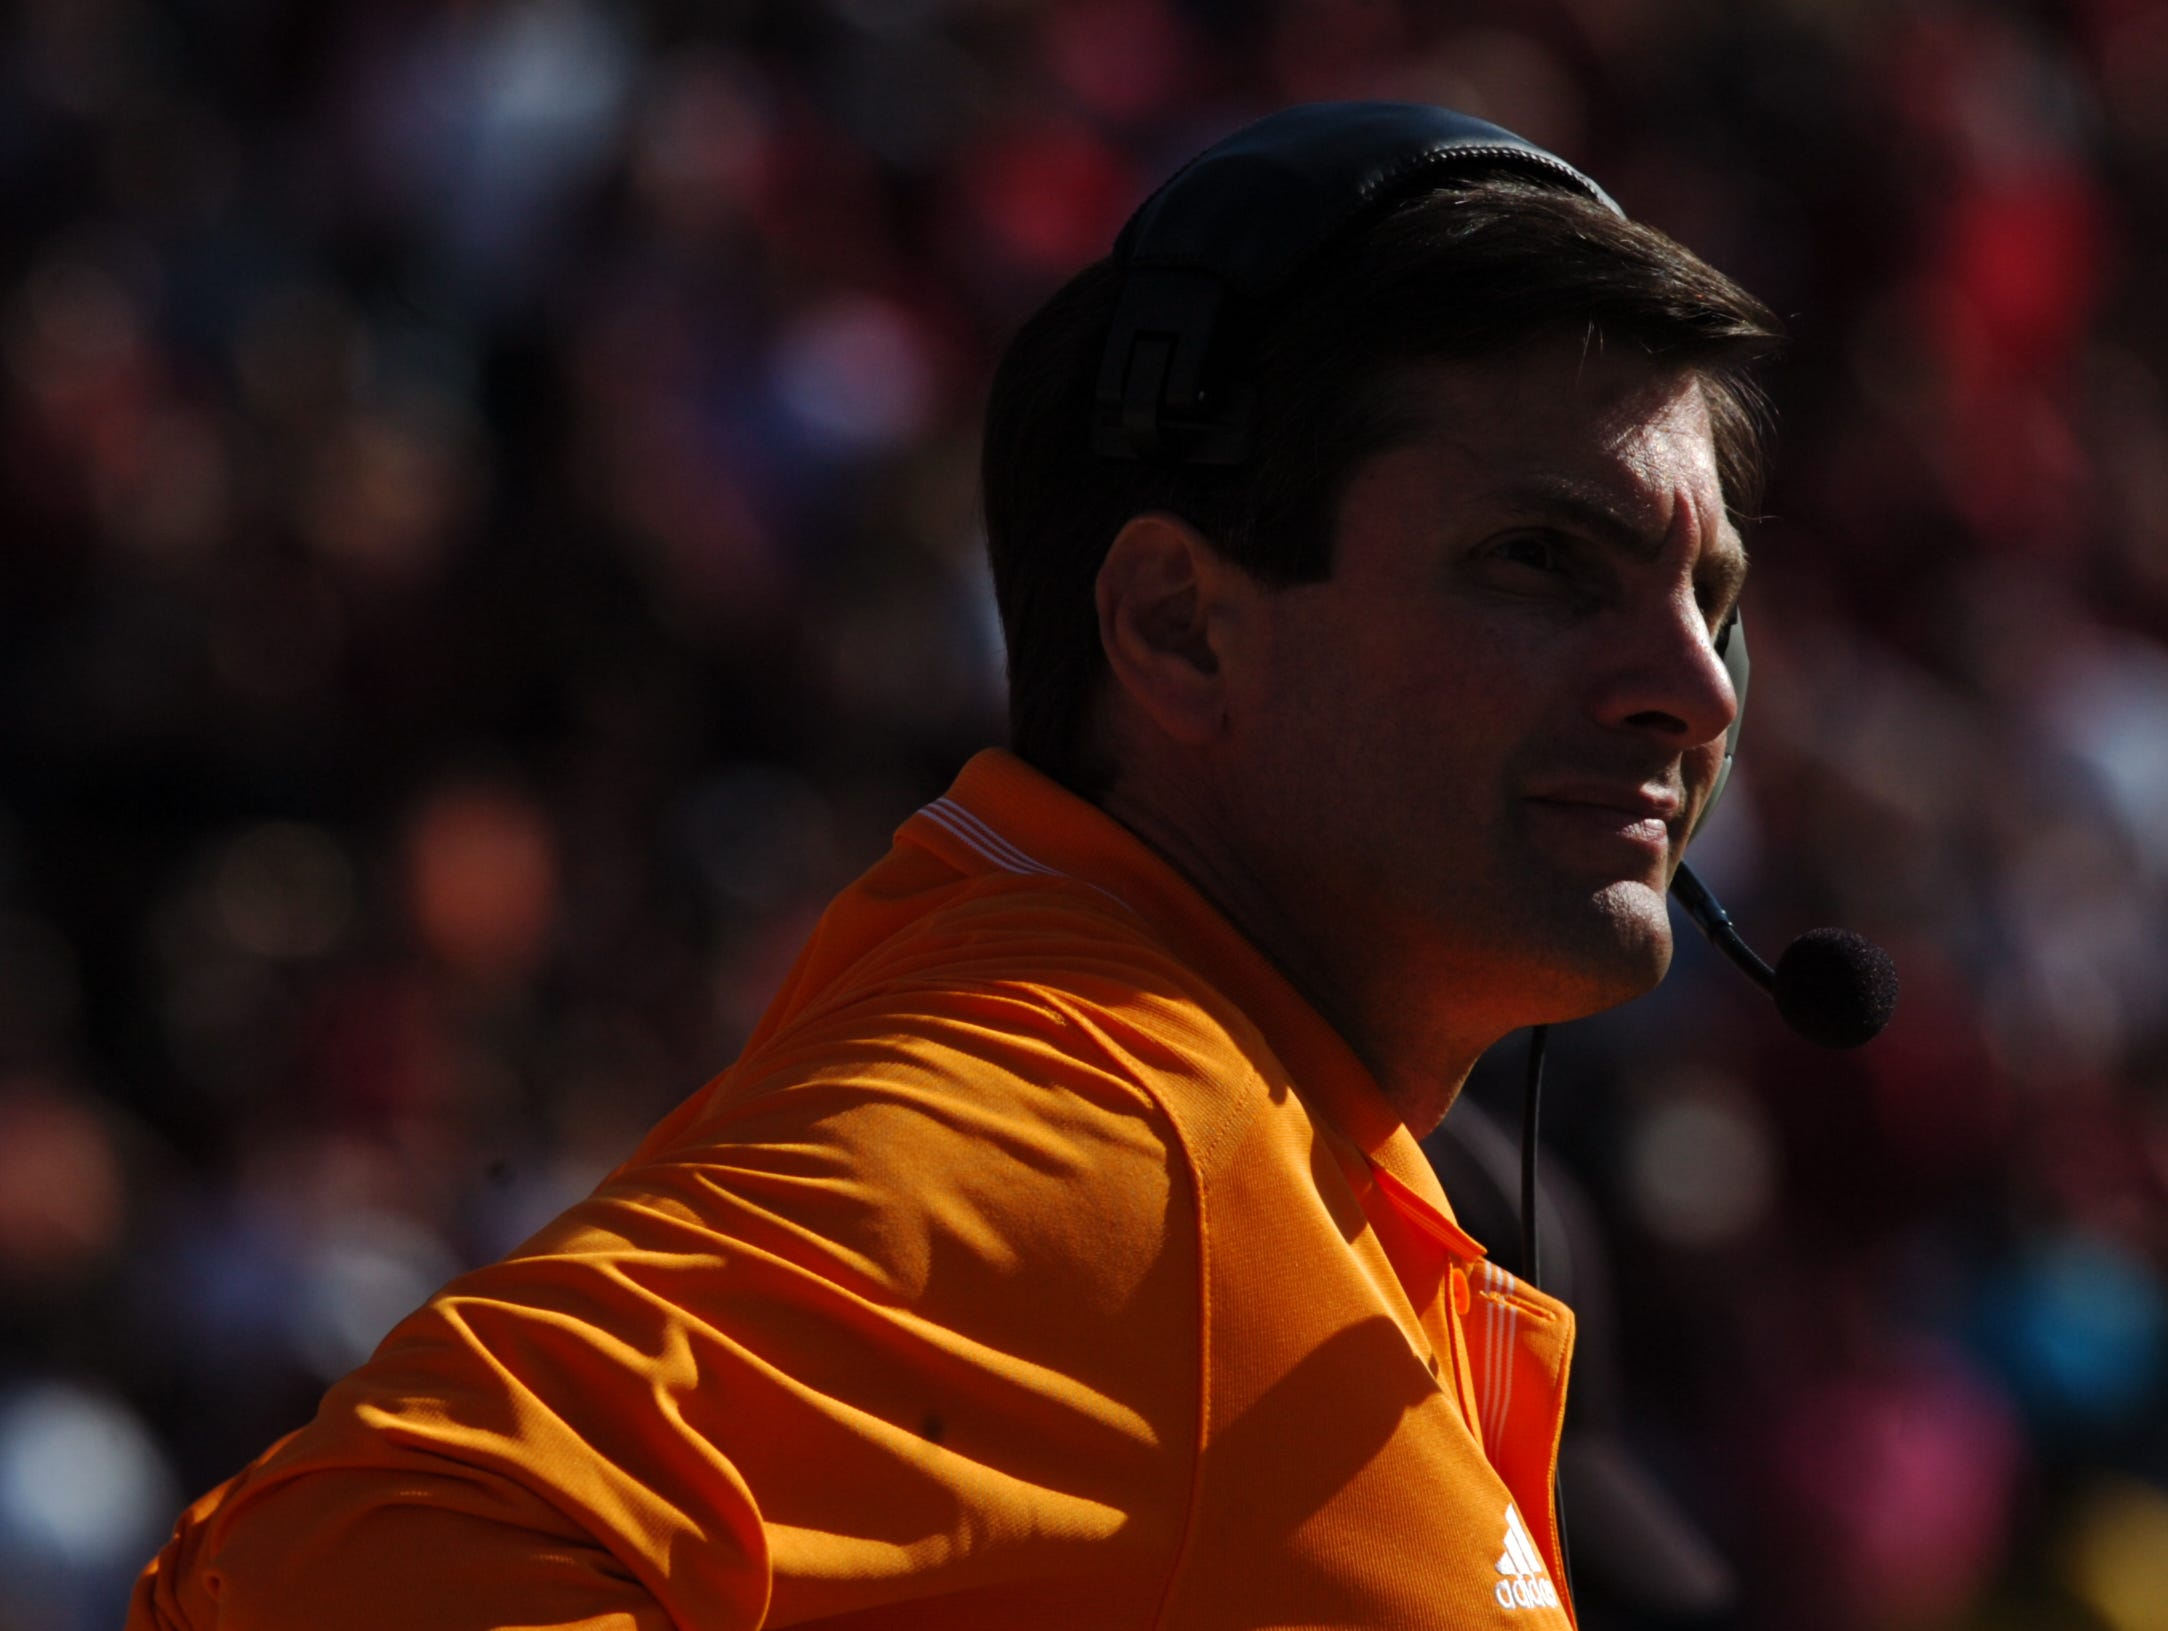 Tennessee head coach Derek Dooley late in the fourth quarter against South Carolina at Williams-Brice Stadium in Columbia, SC on Saturday, Oct. 30, 2010. UT lost the game 38-24, giving them a 2-6 record.